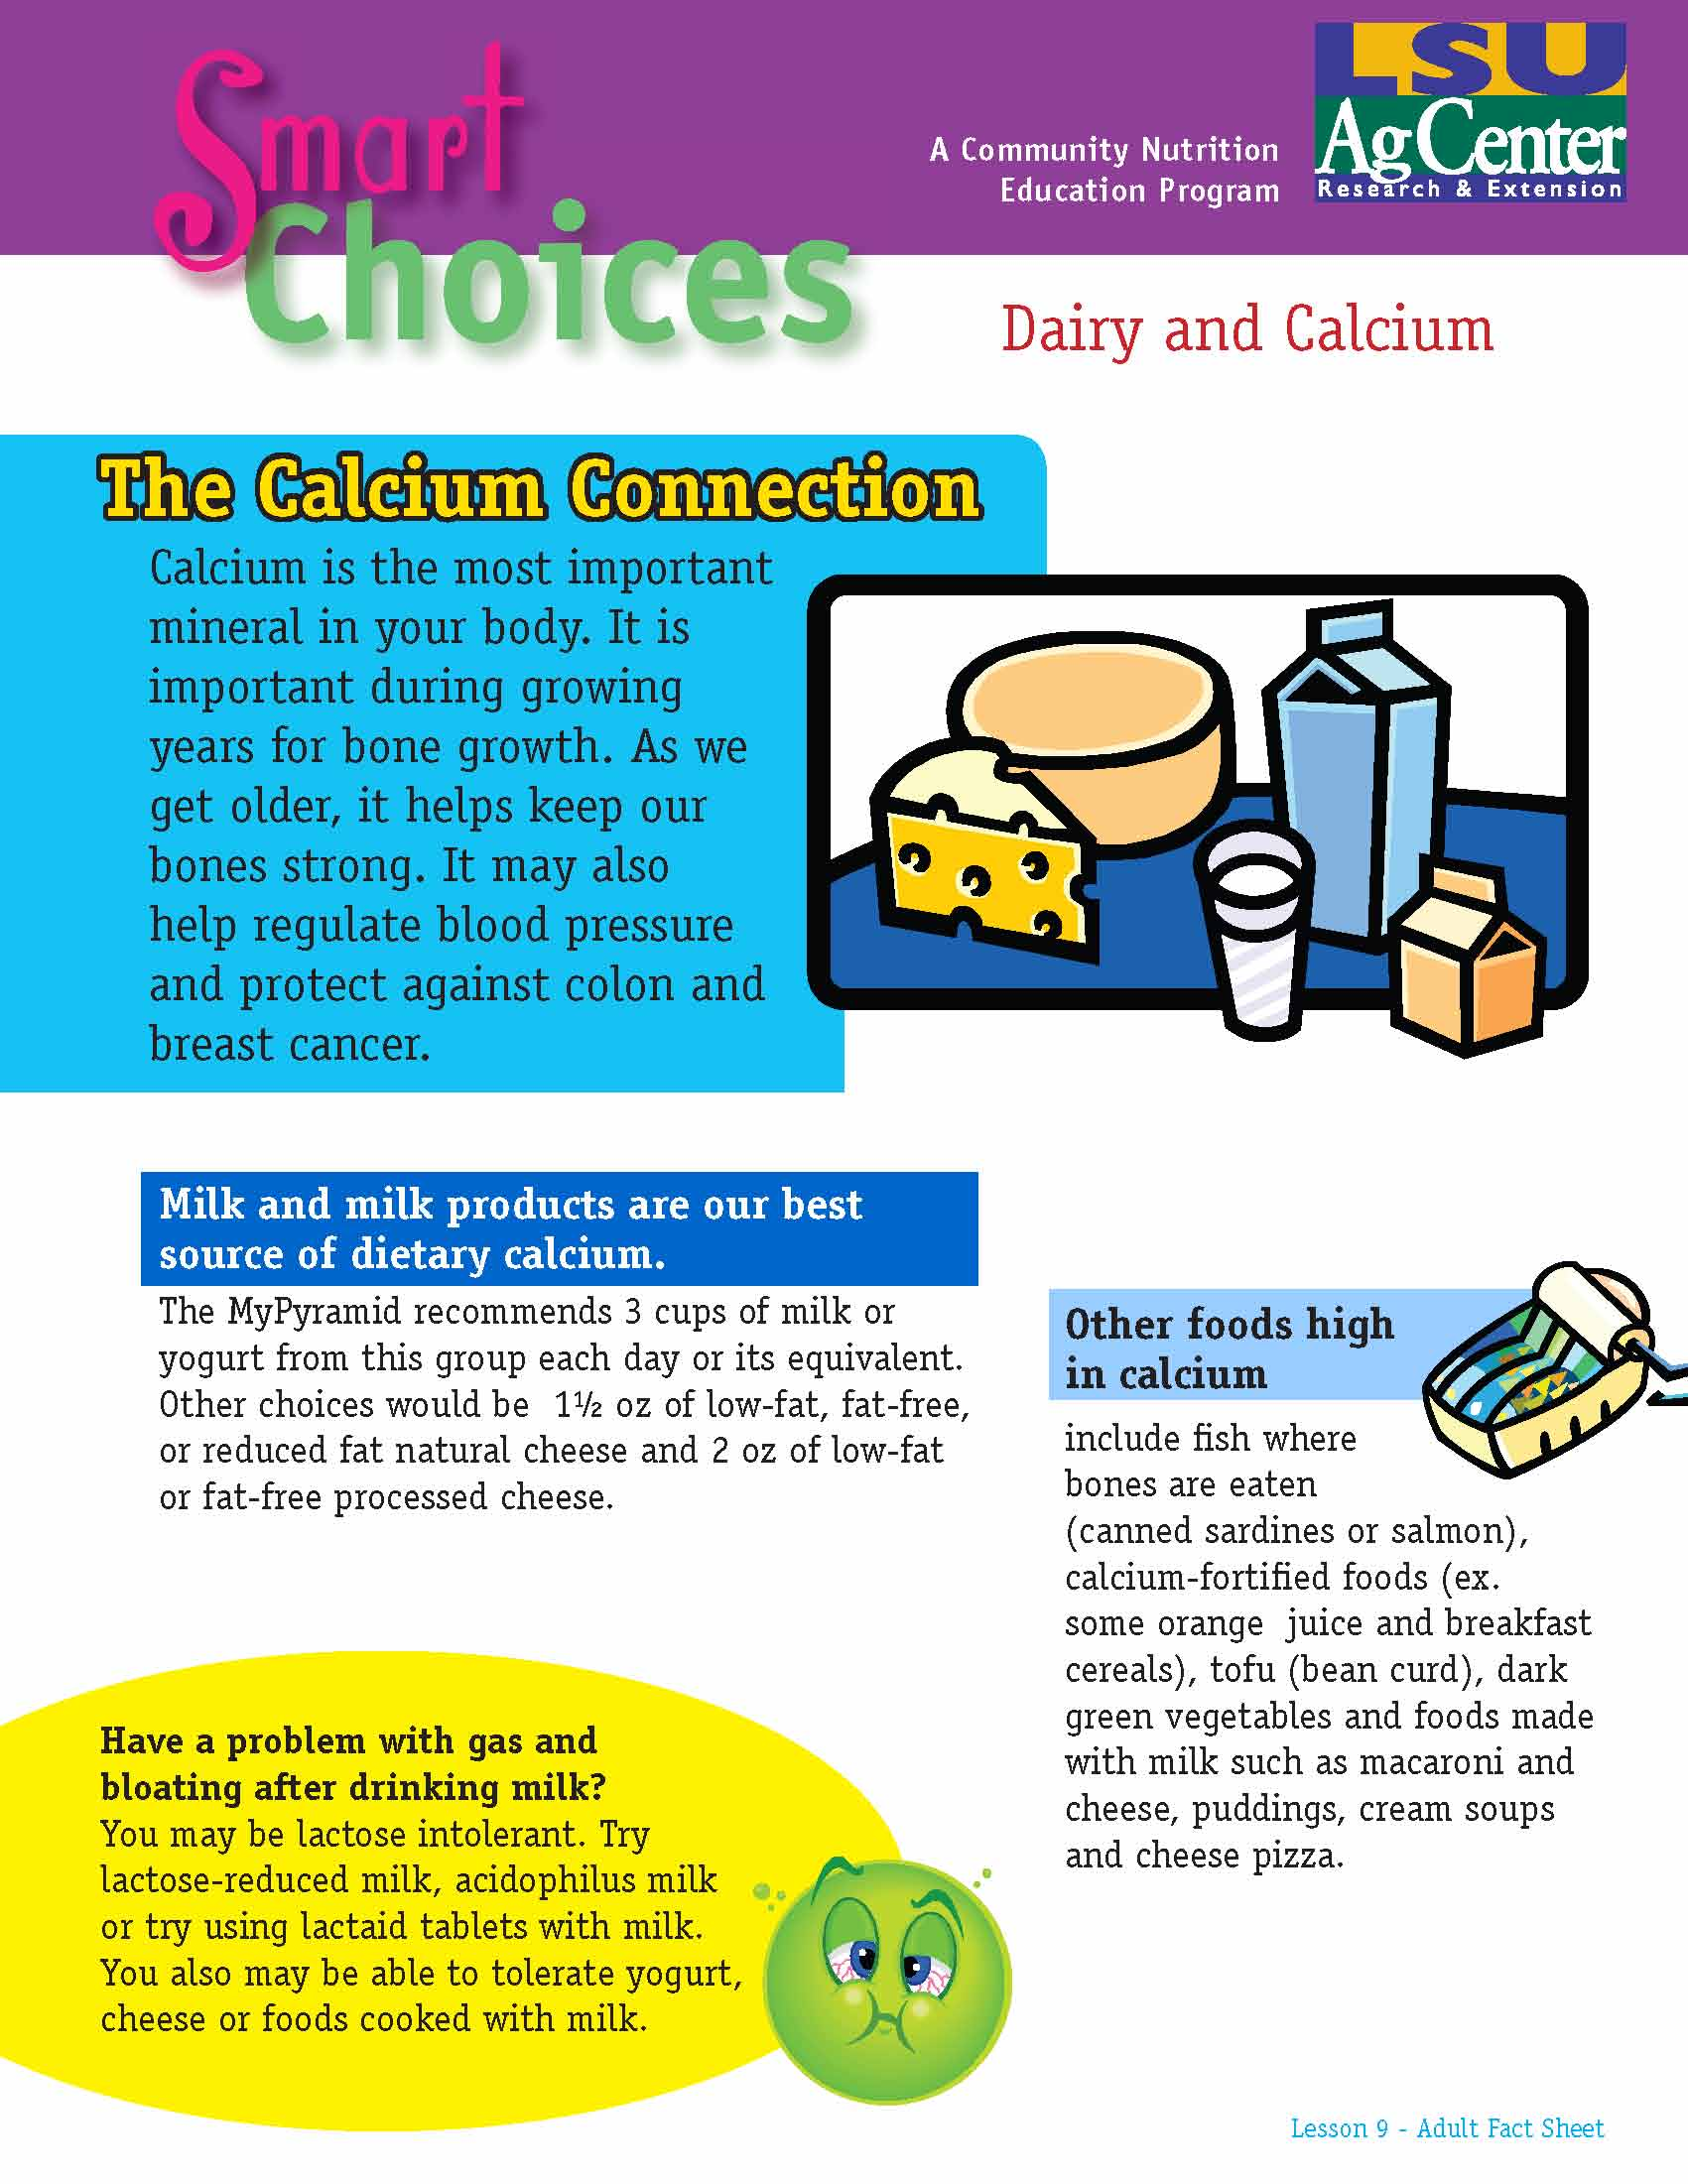 Smart Choices:  The Calcium Connection